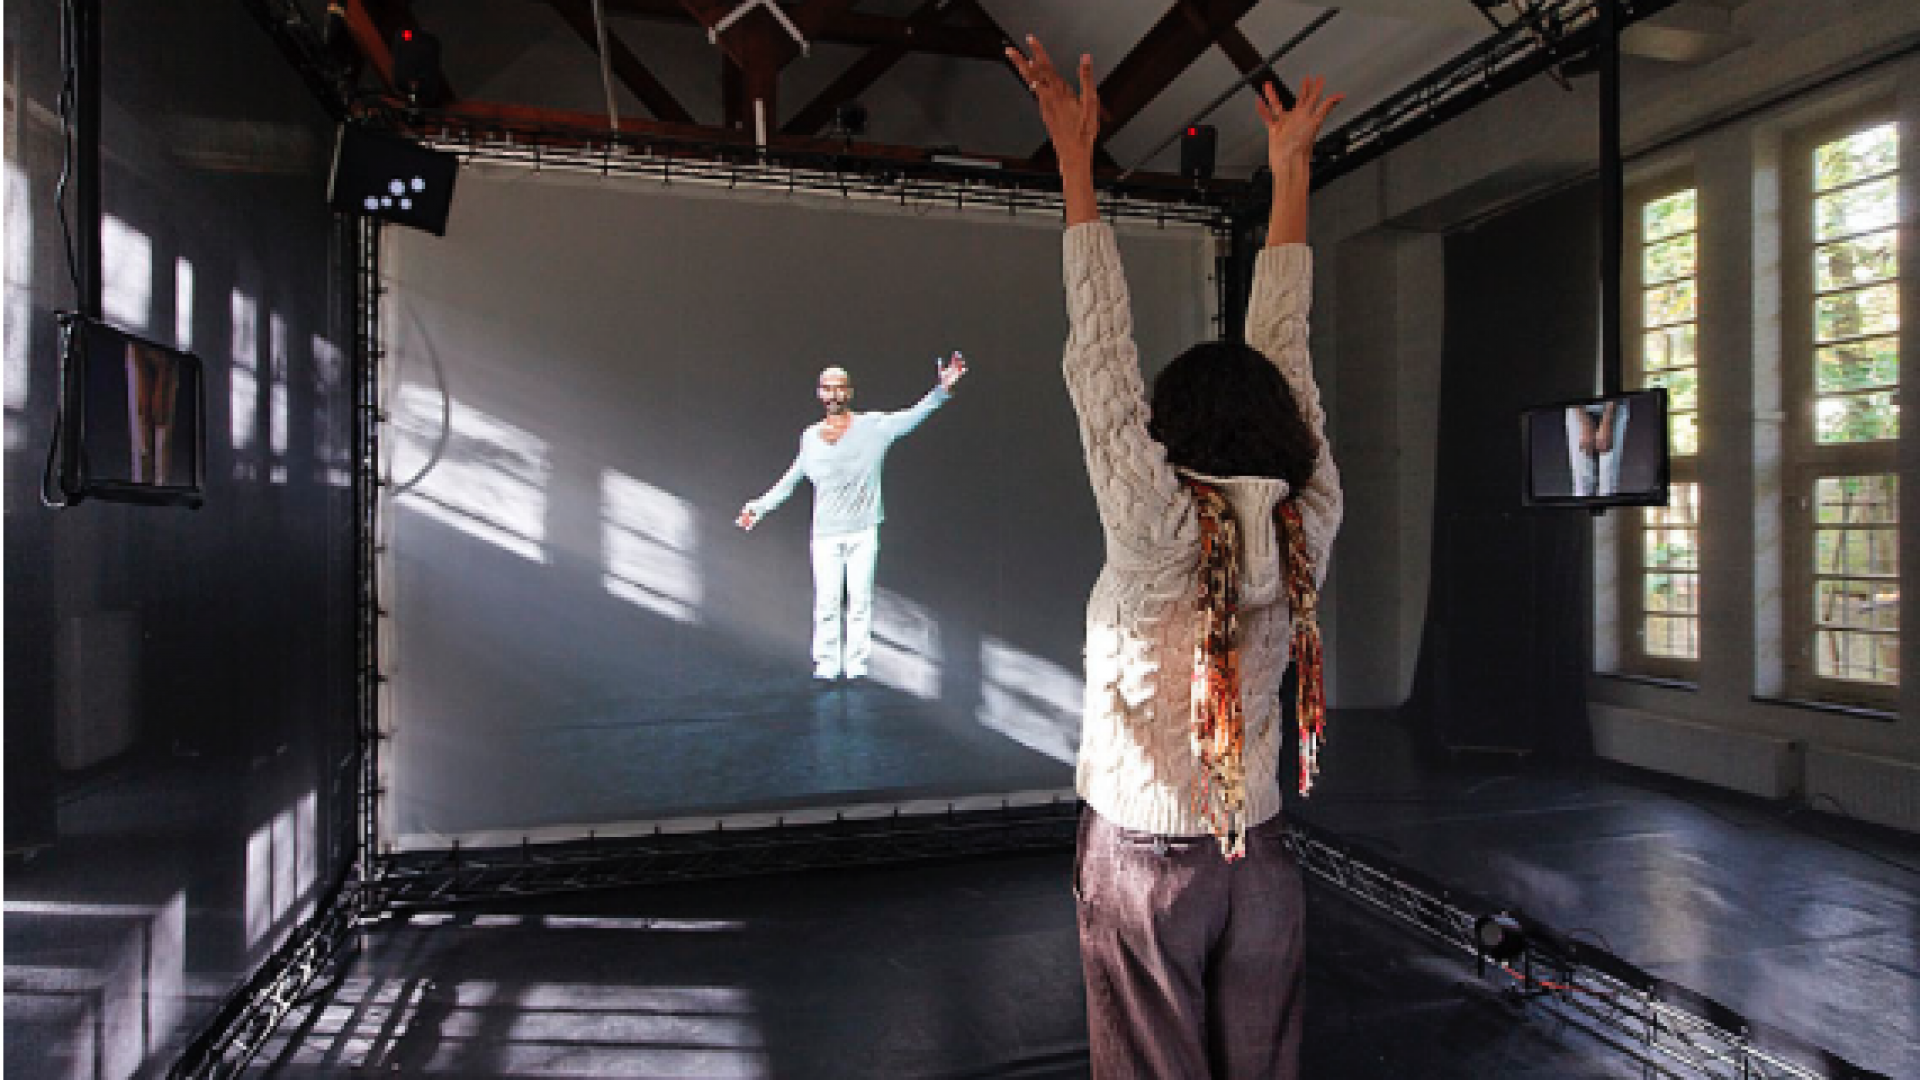 The movements of interactive systems put into dance